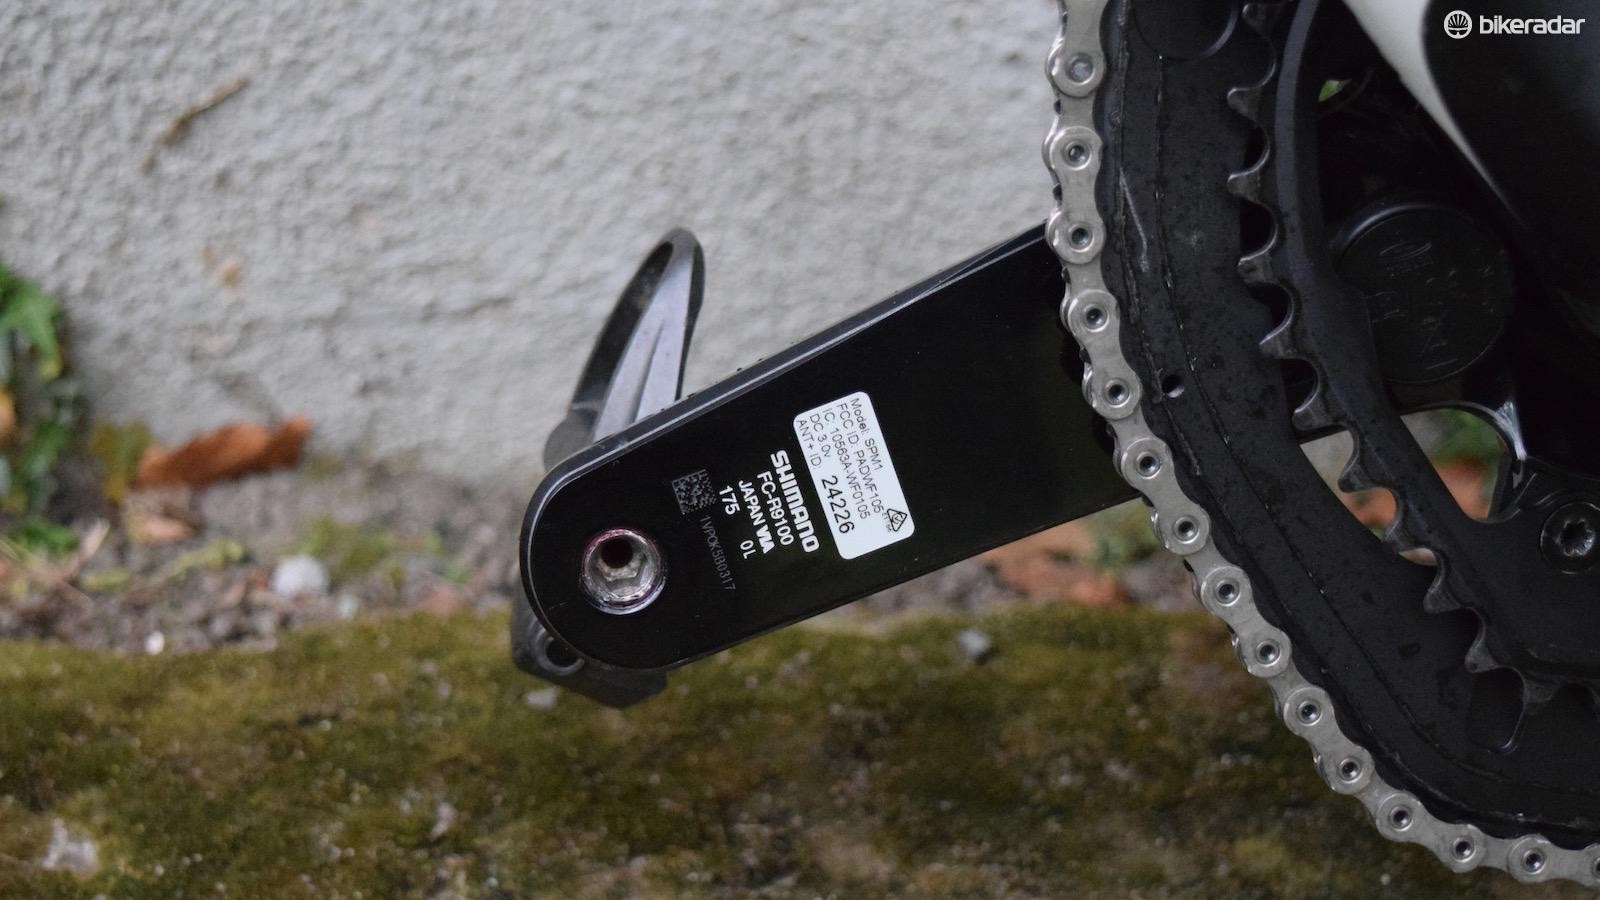 The 175mm cranks are fitted with Stages power meters